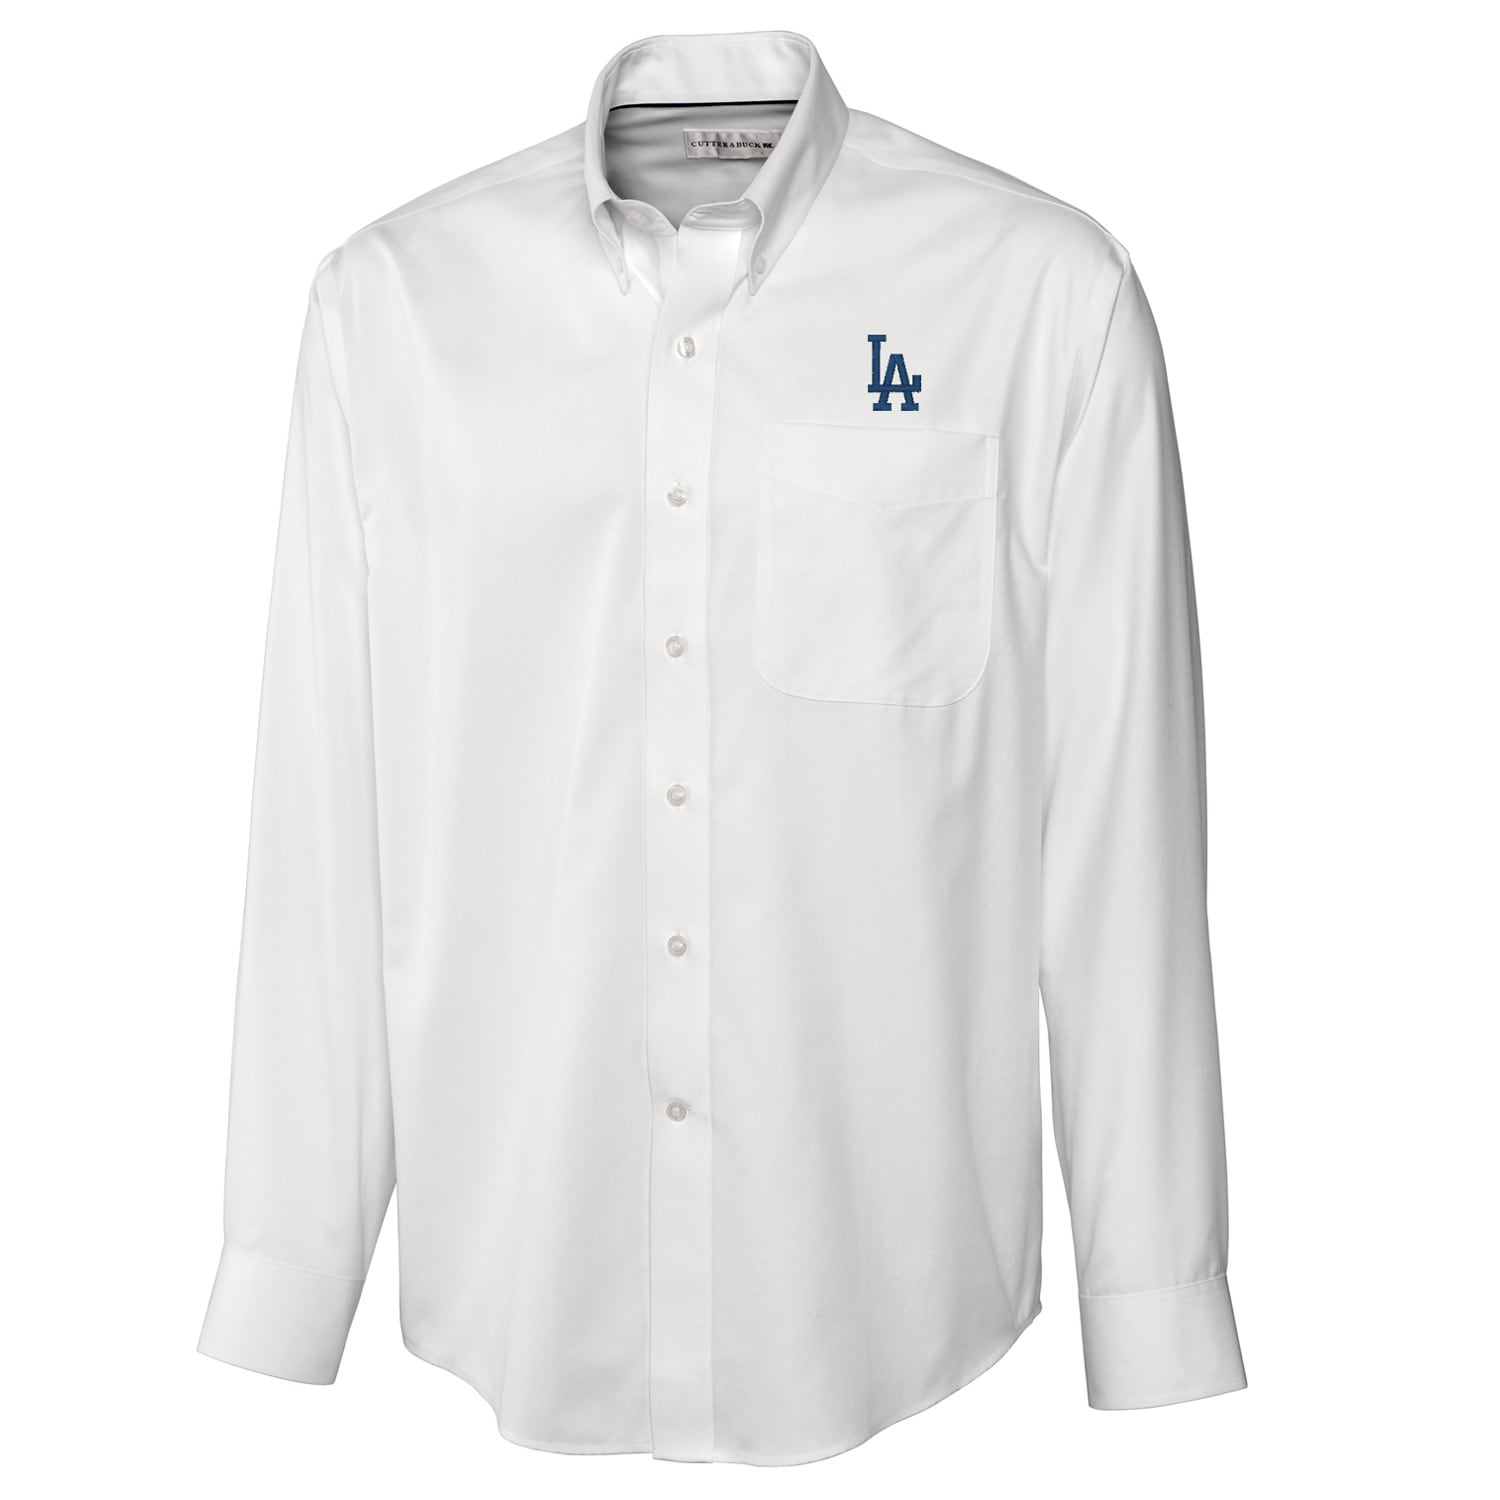 Los Angeles Dodgers Cutter & Buck Big & Tall Epic Easy Care Fine Twill Long Sleeve Shirt - White